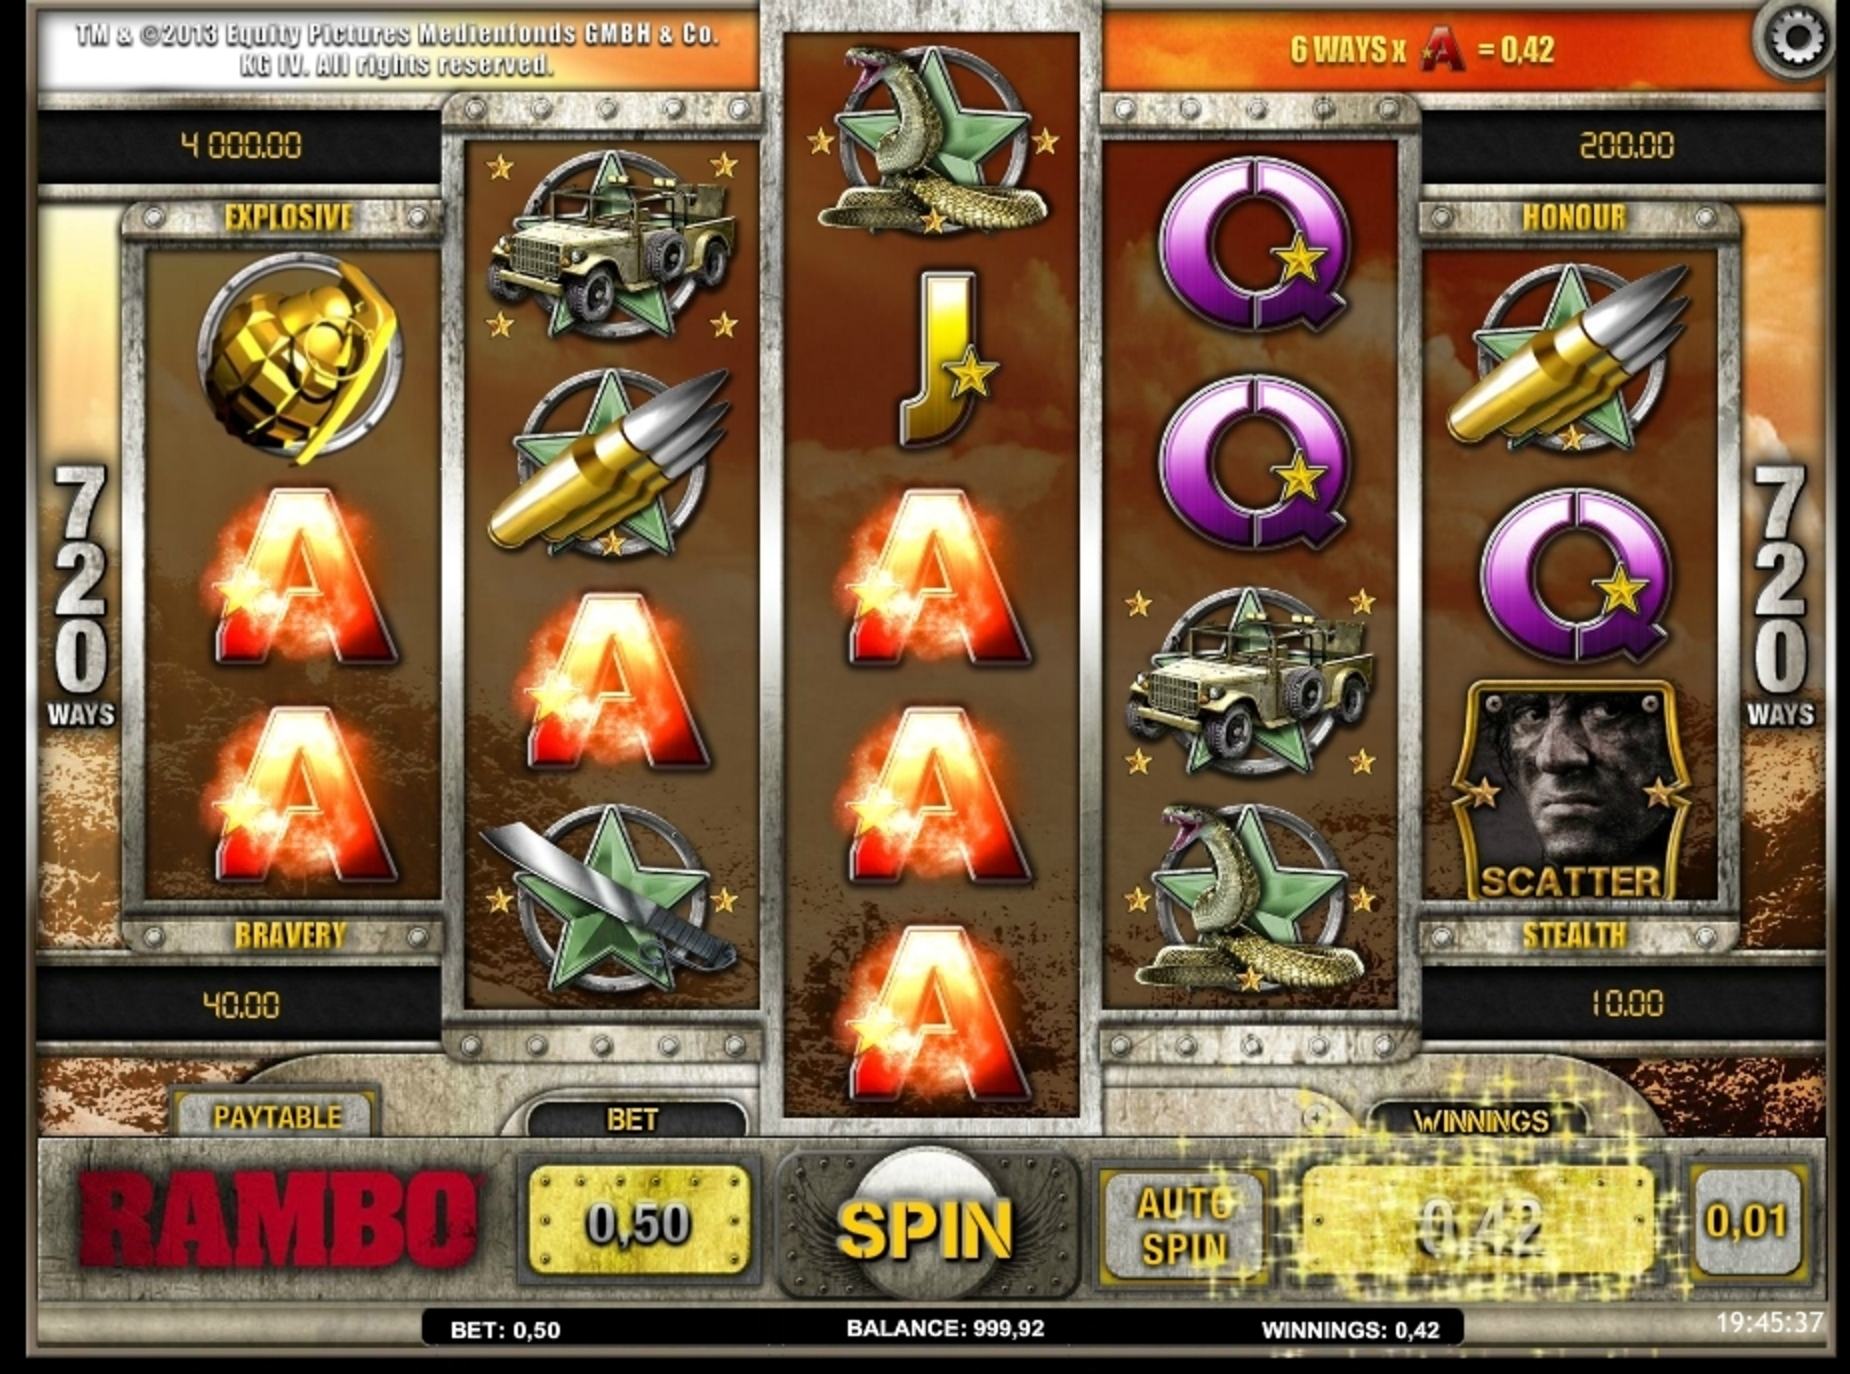 Win Money in Rambo (iSoftBet) Free Slot Game by iSoftBet